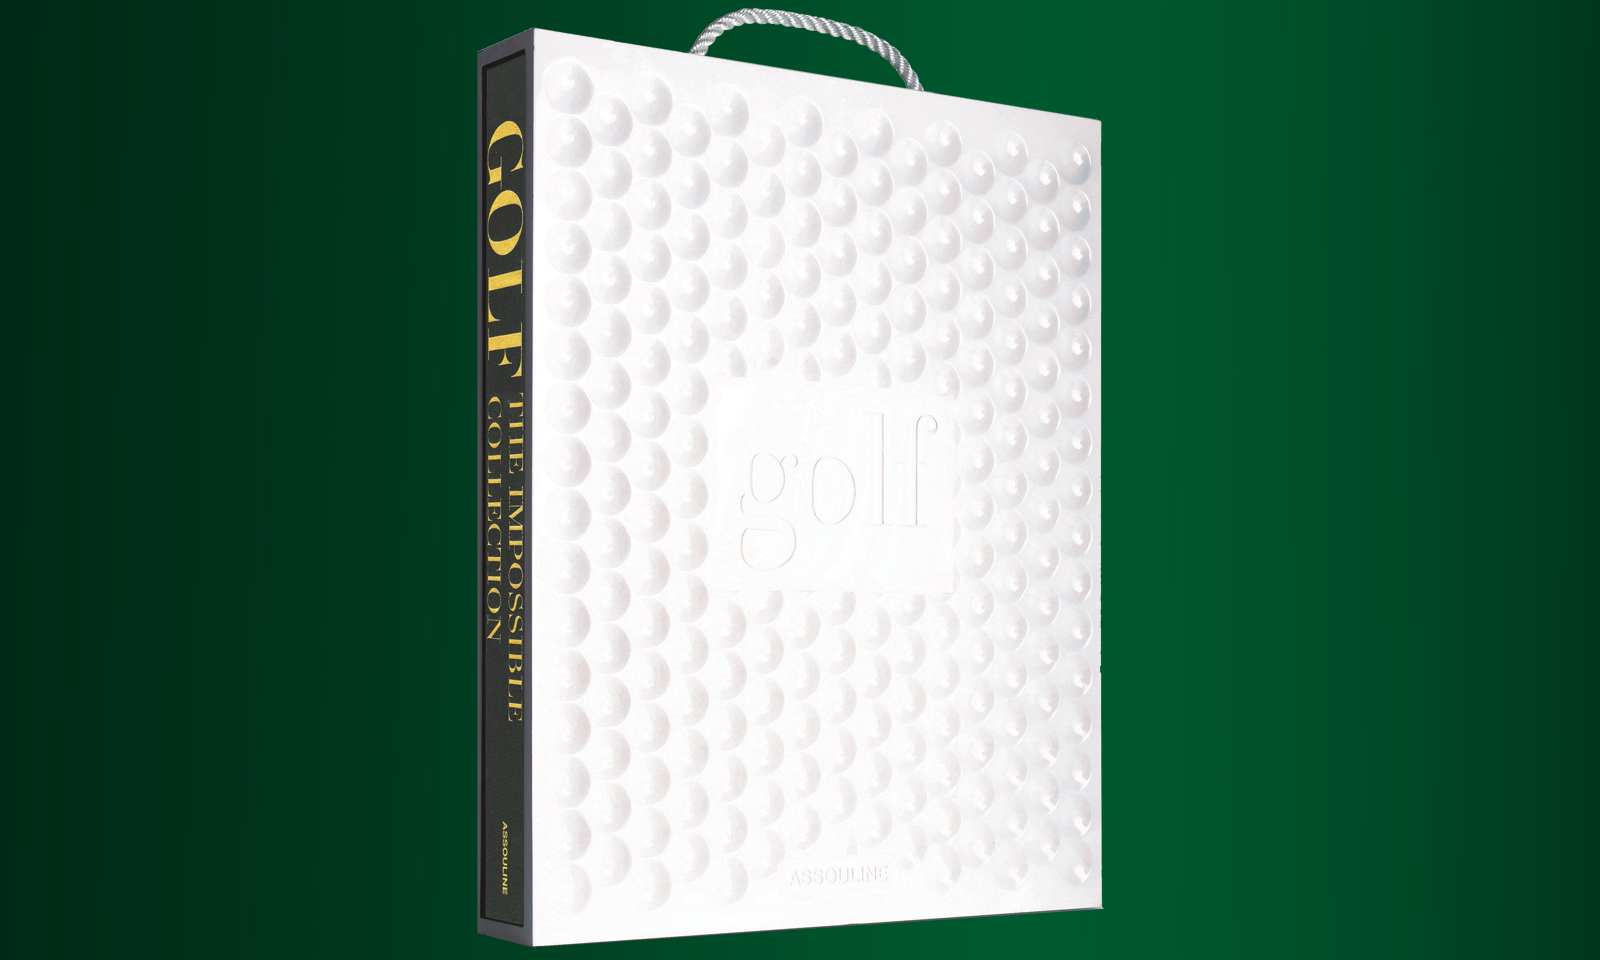 Web The Impossible Collection of Golf Cover Case 3